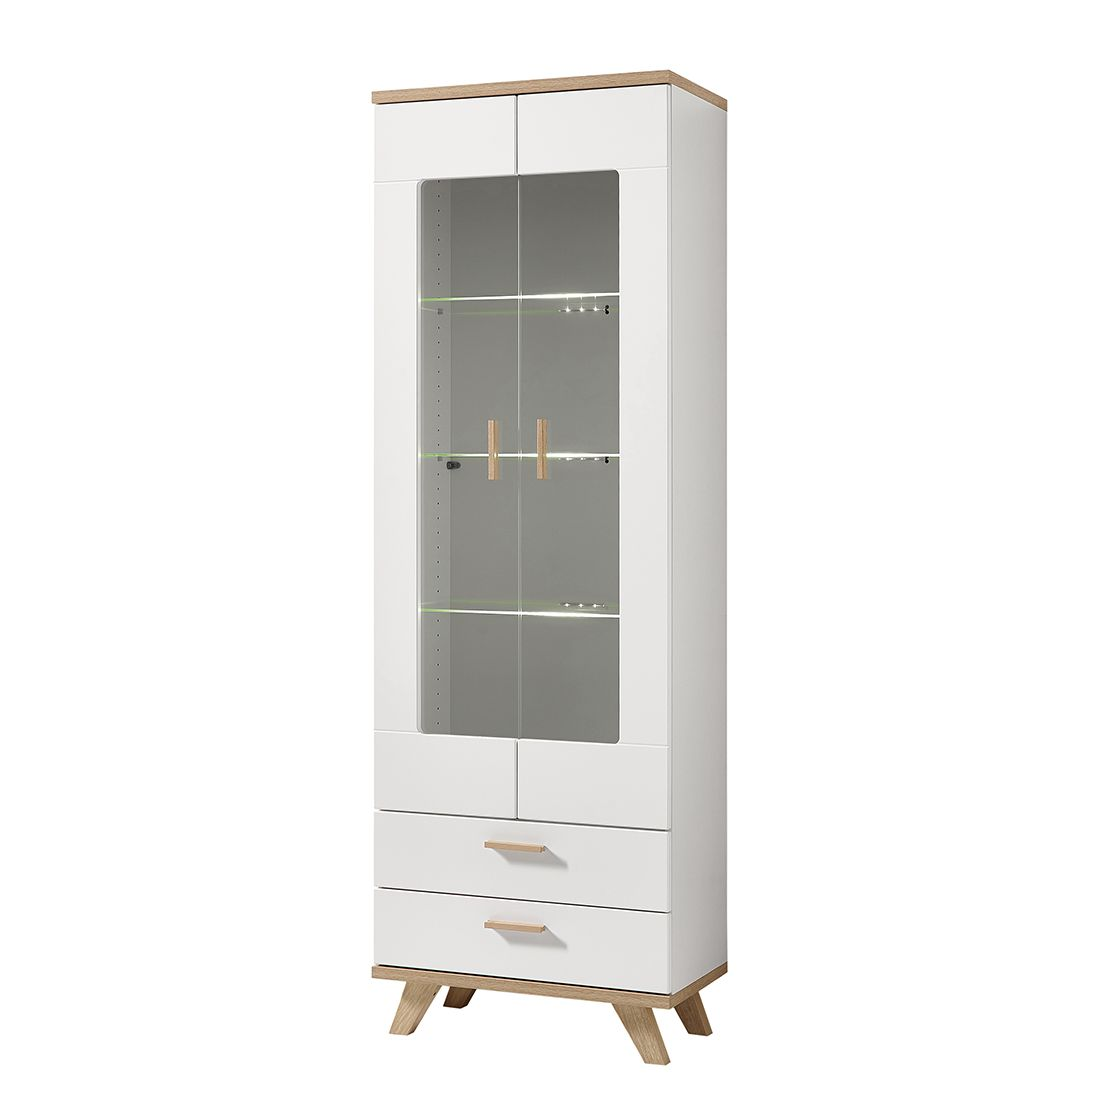 vitrine neston supermatt wei eiche sanremo dekor morteens g nstig online kaufen. Black Bedroom Furniture Sets. Home Design Ideas